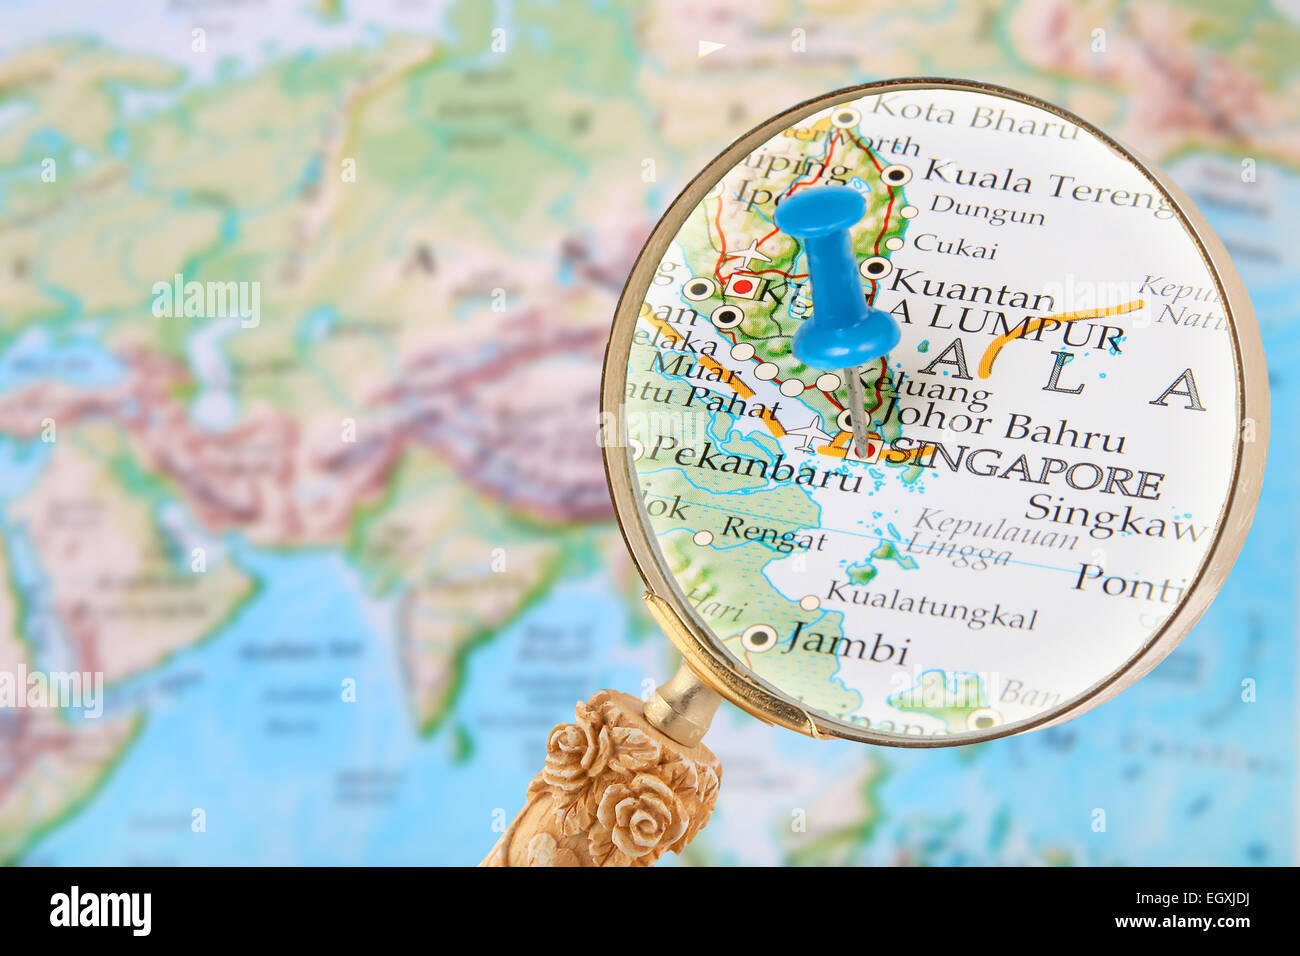 Map Of Asia Singapore.Singapore City Map Asia Stock Photos Singapore City Map Asia Stock